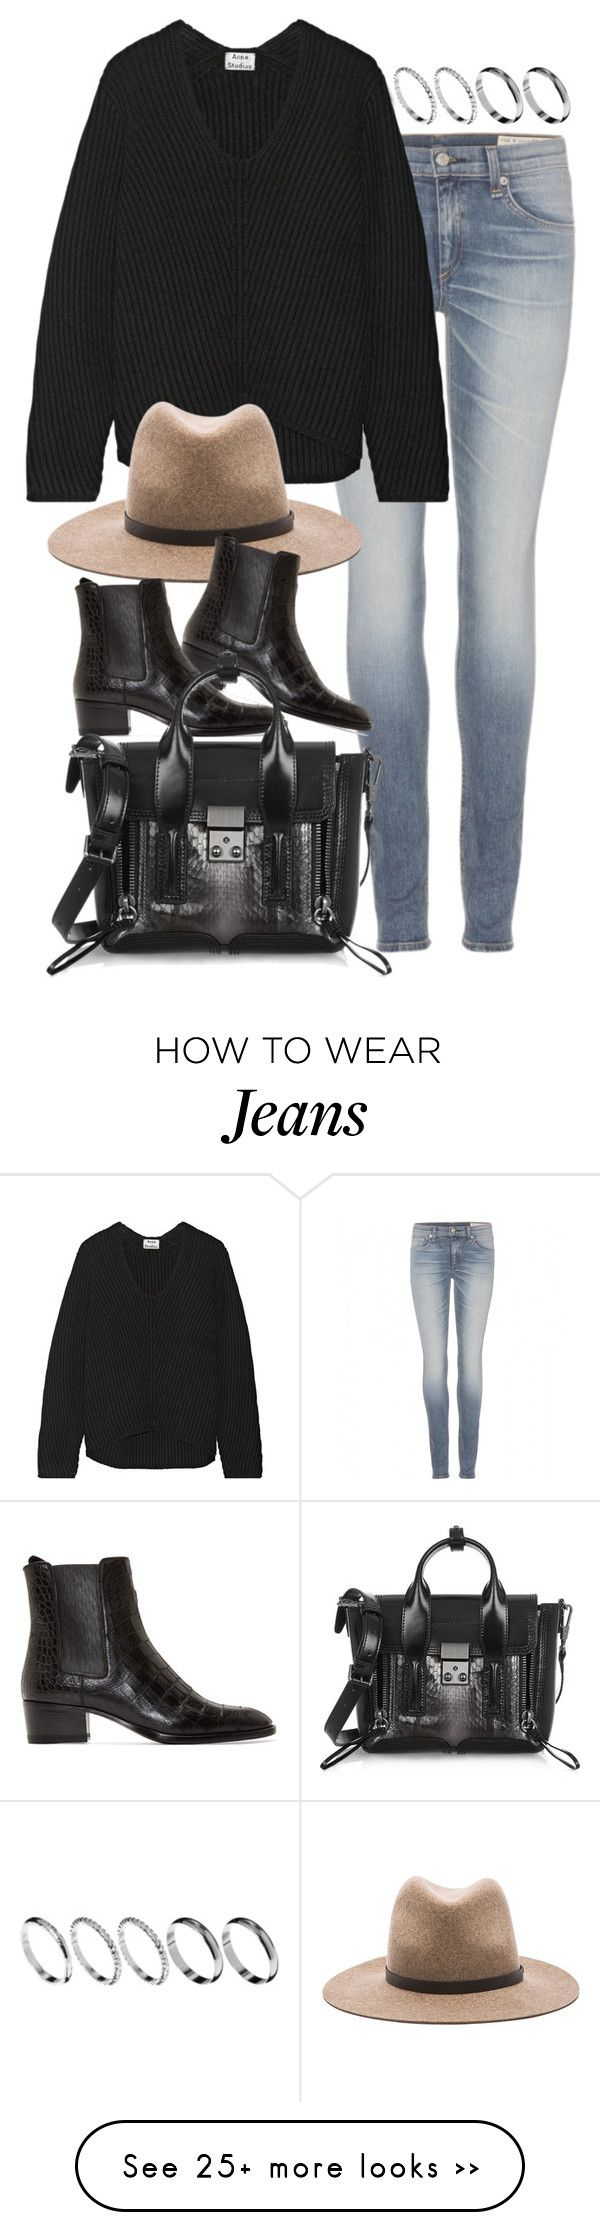 """""""Untitled #7281"""" by nikka-phillips on Polyvore featuring ASOS, rag & bone, Acne Studios, Yves Saint Laurent and 3.1 Phillip Lim"""